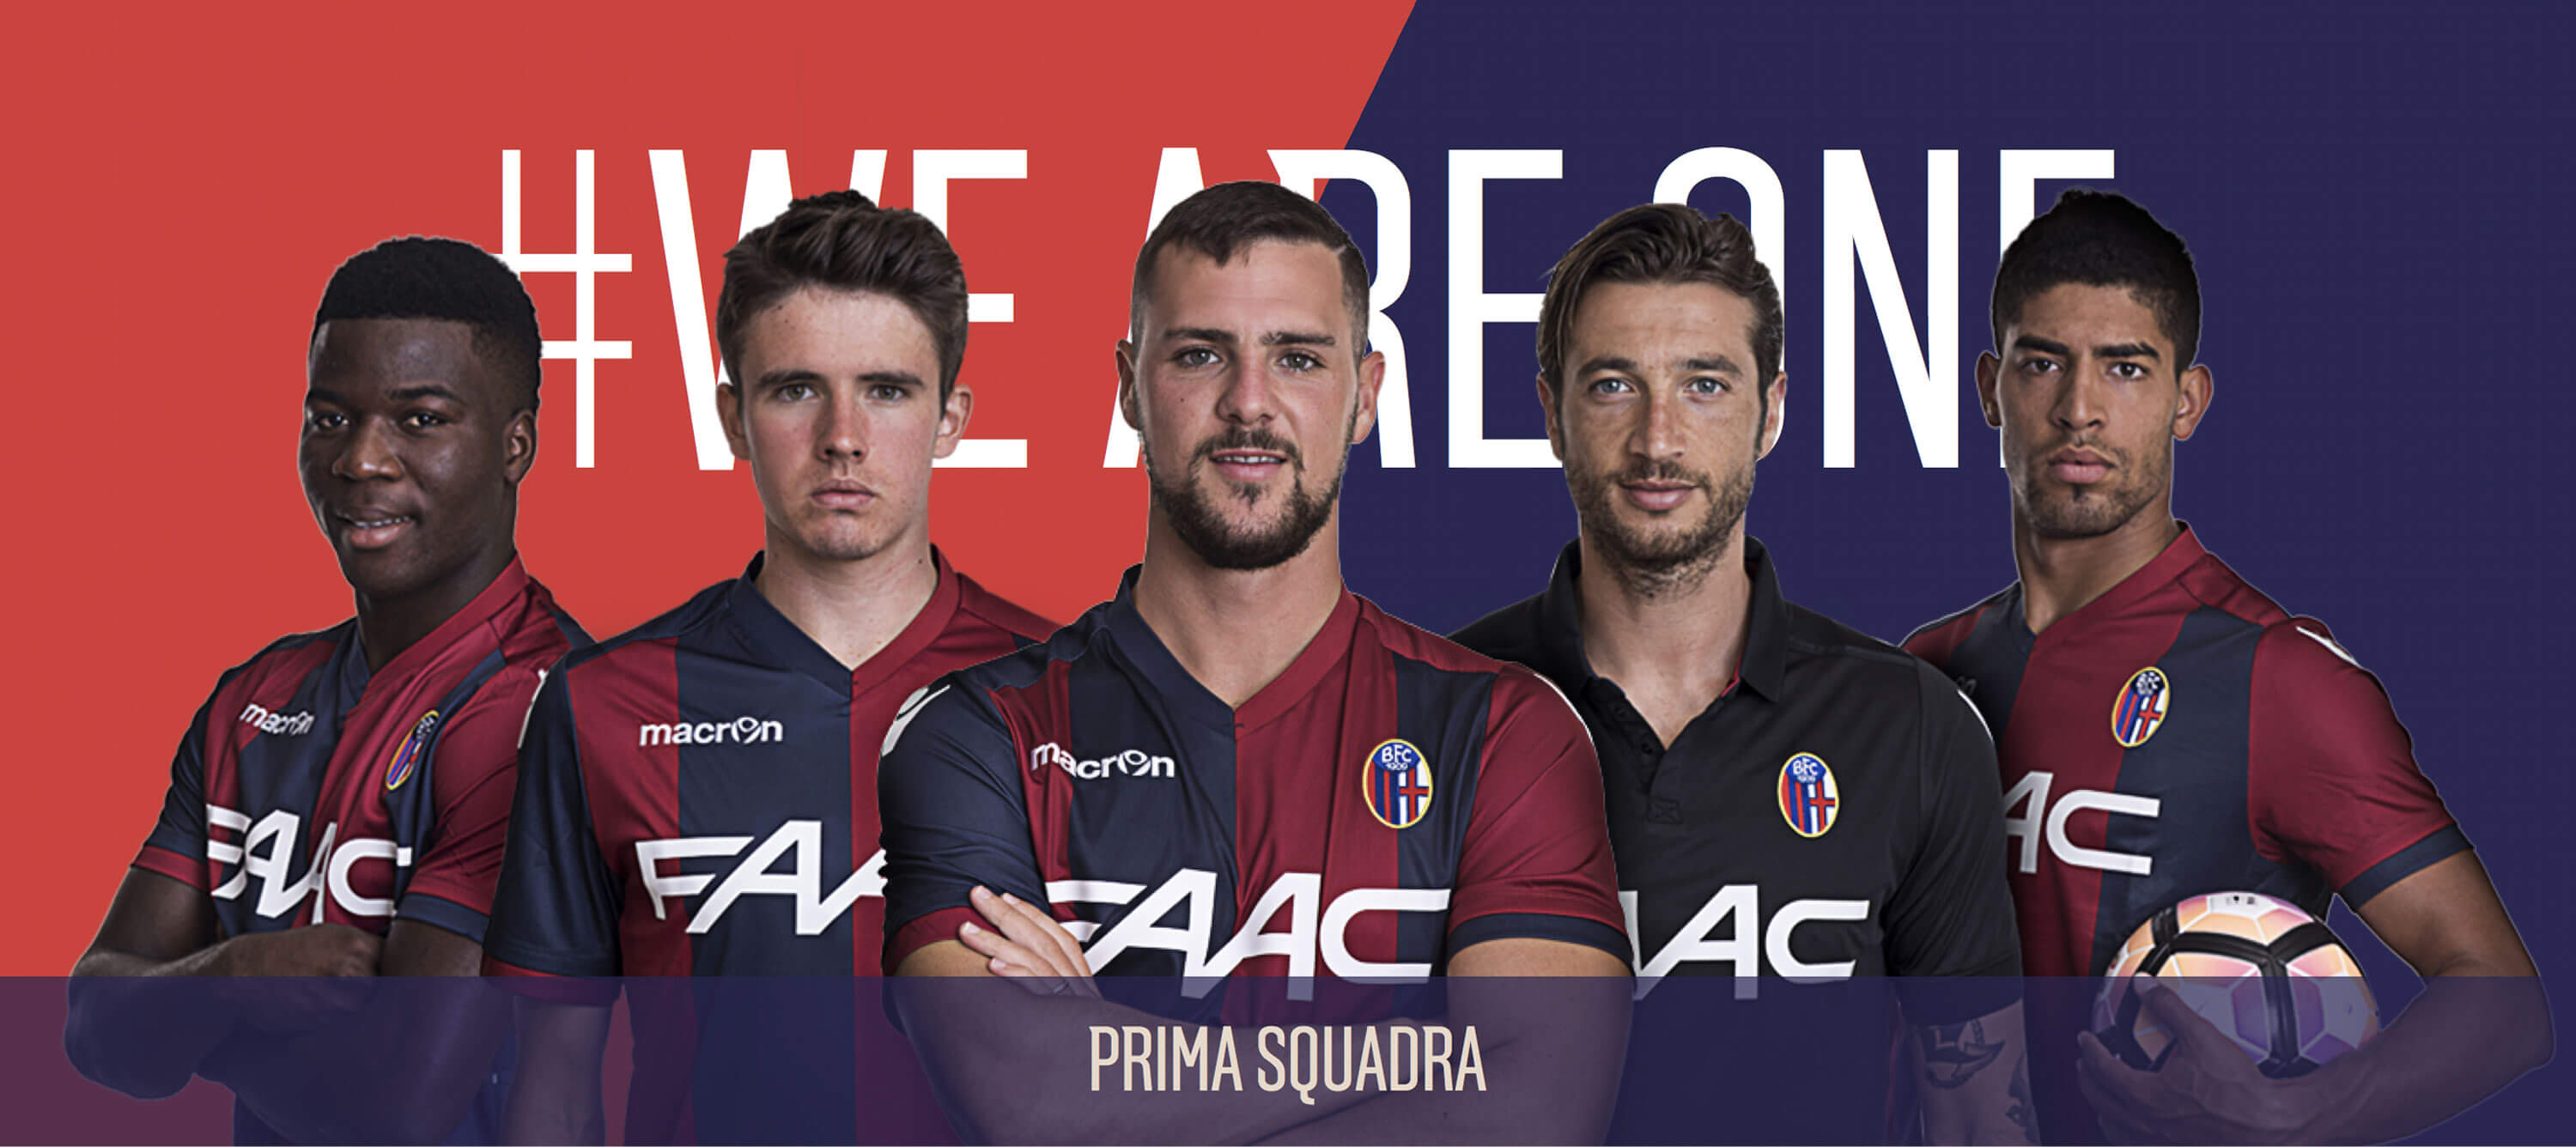 We are one - Bologna F.C. 1909